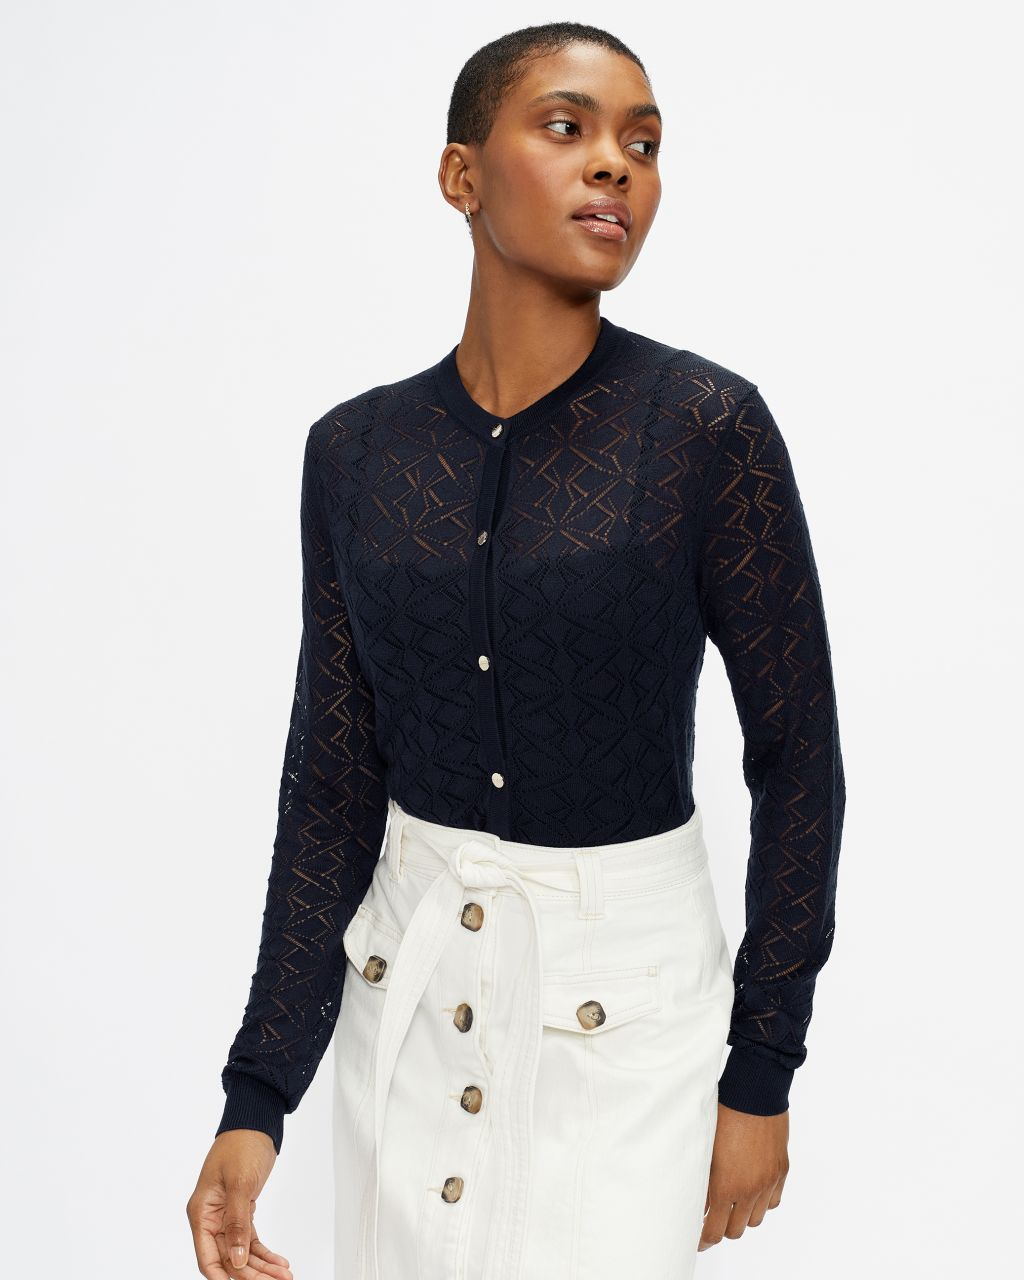 TED BAKER Stitch Detail Cardigan | TED BAKER SALE